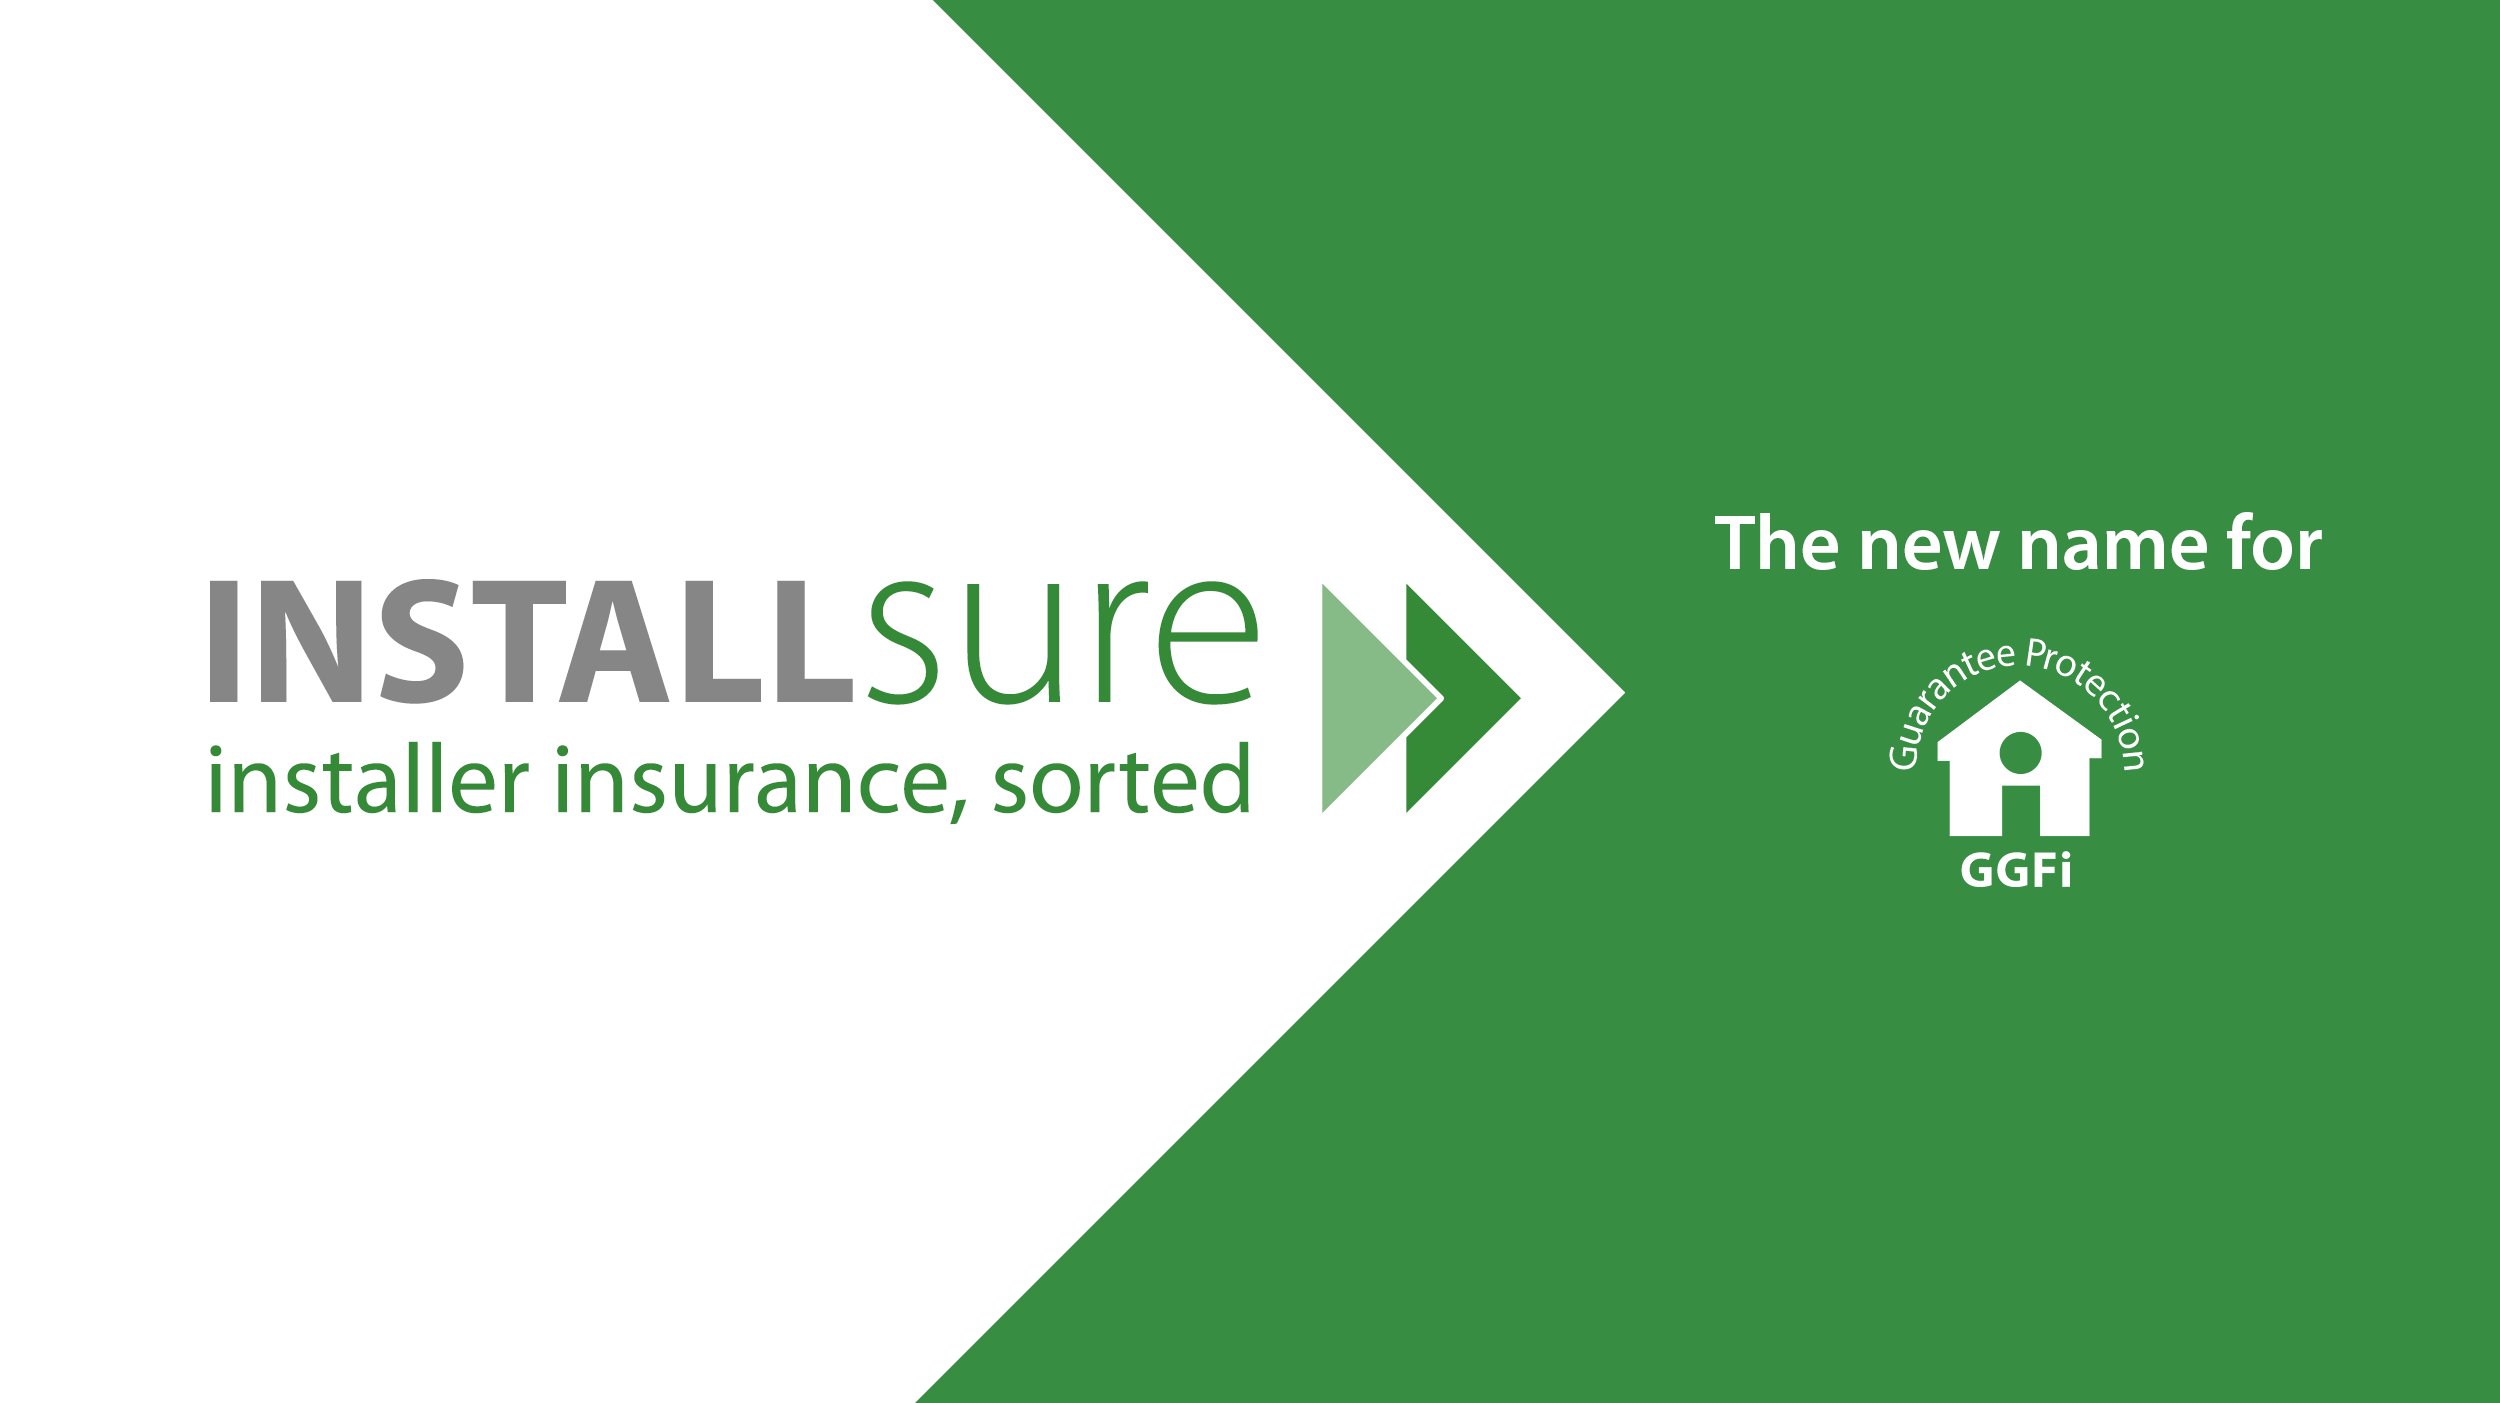 Installsure new name for GGFi